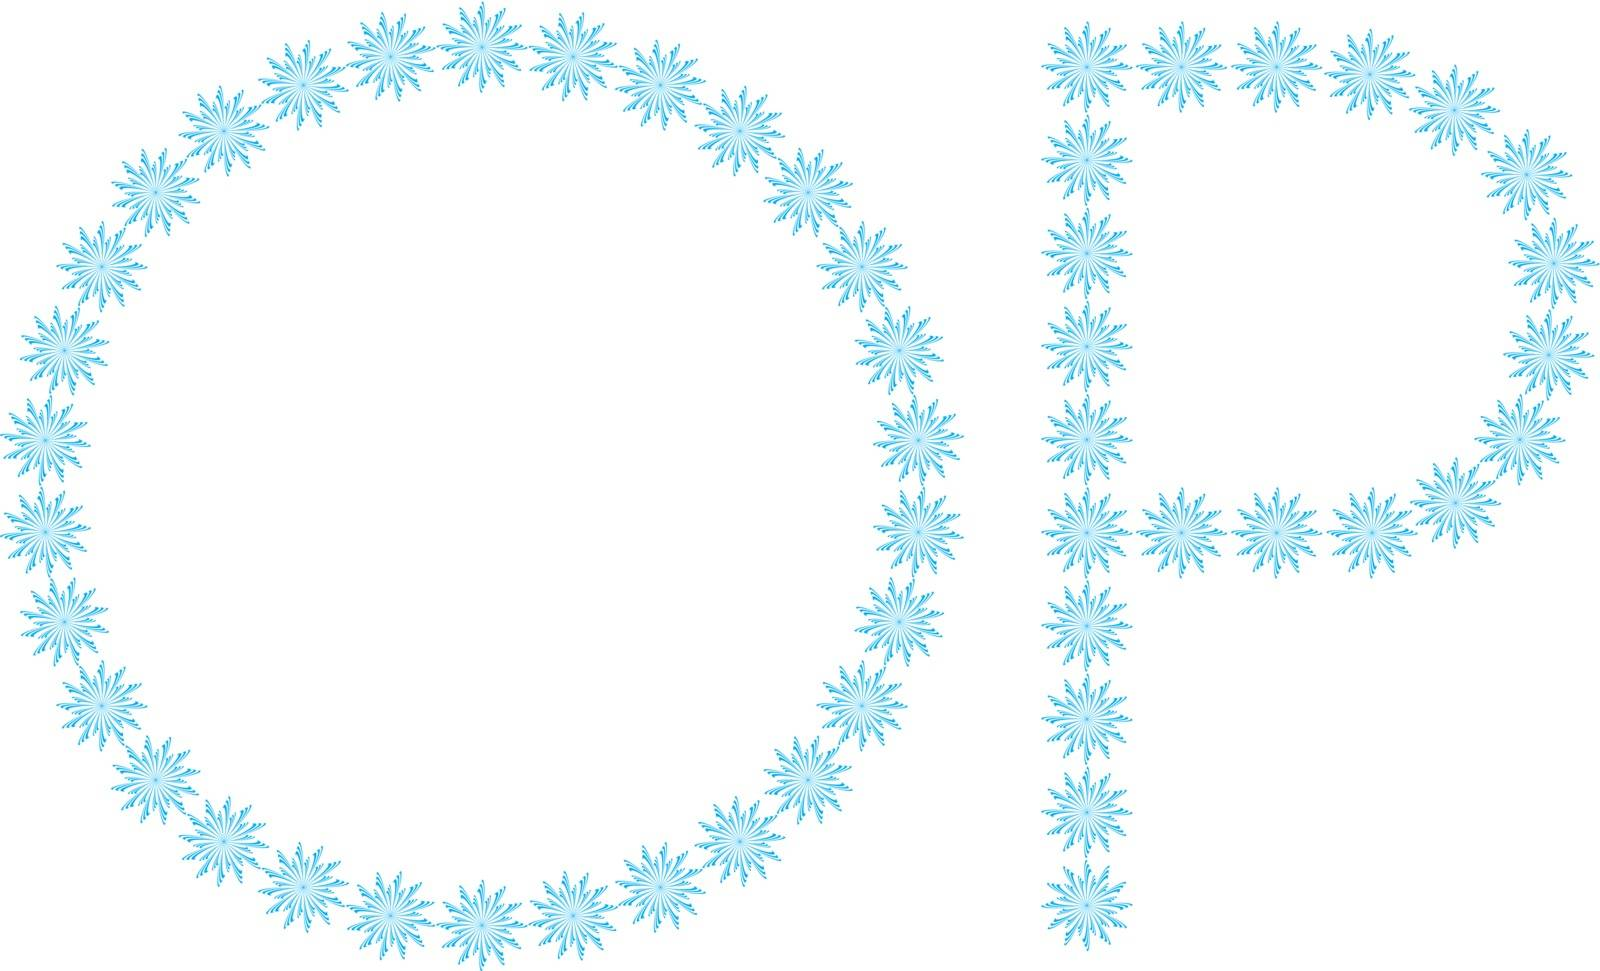 """illustration of the letter """"O,P"""" formed by snowflakes"""